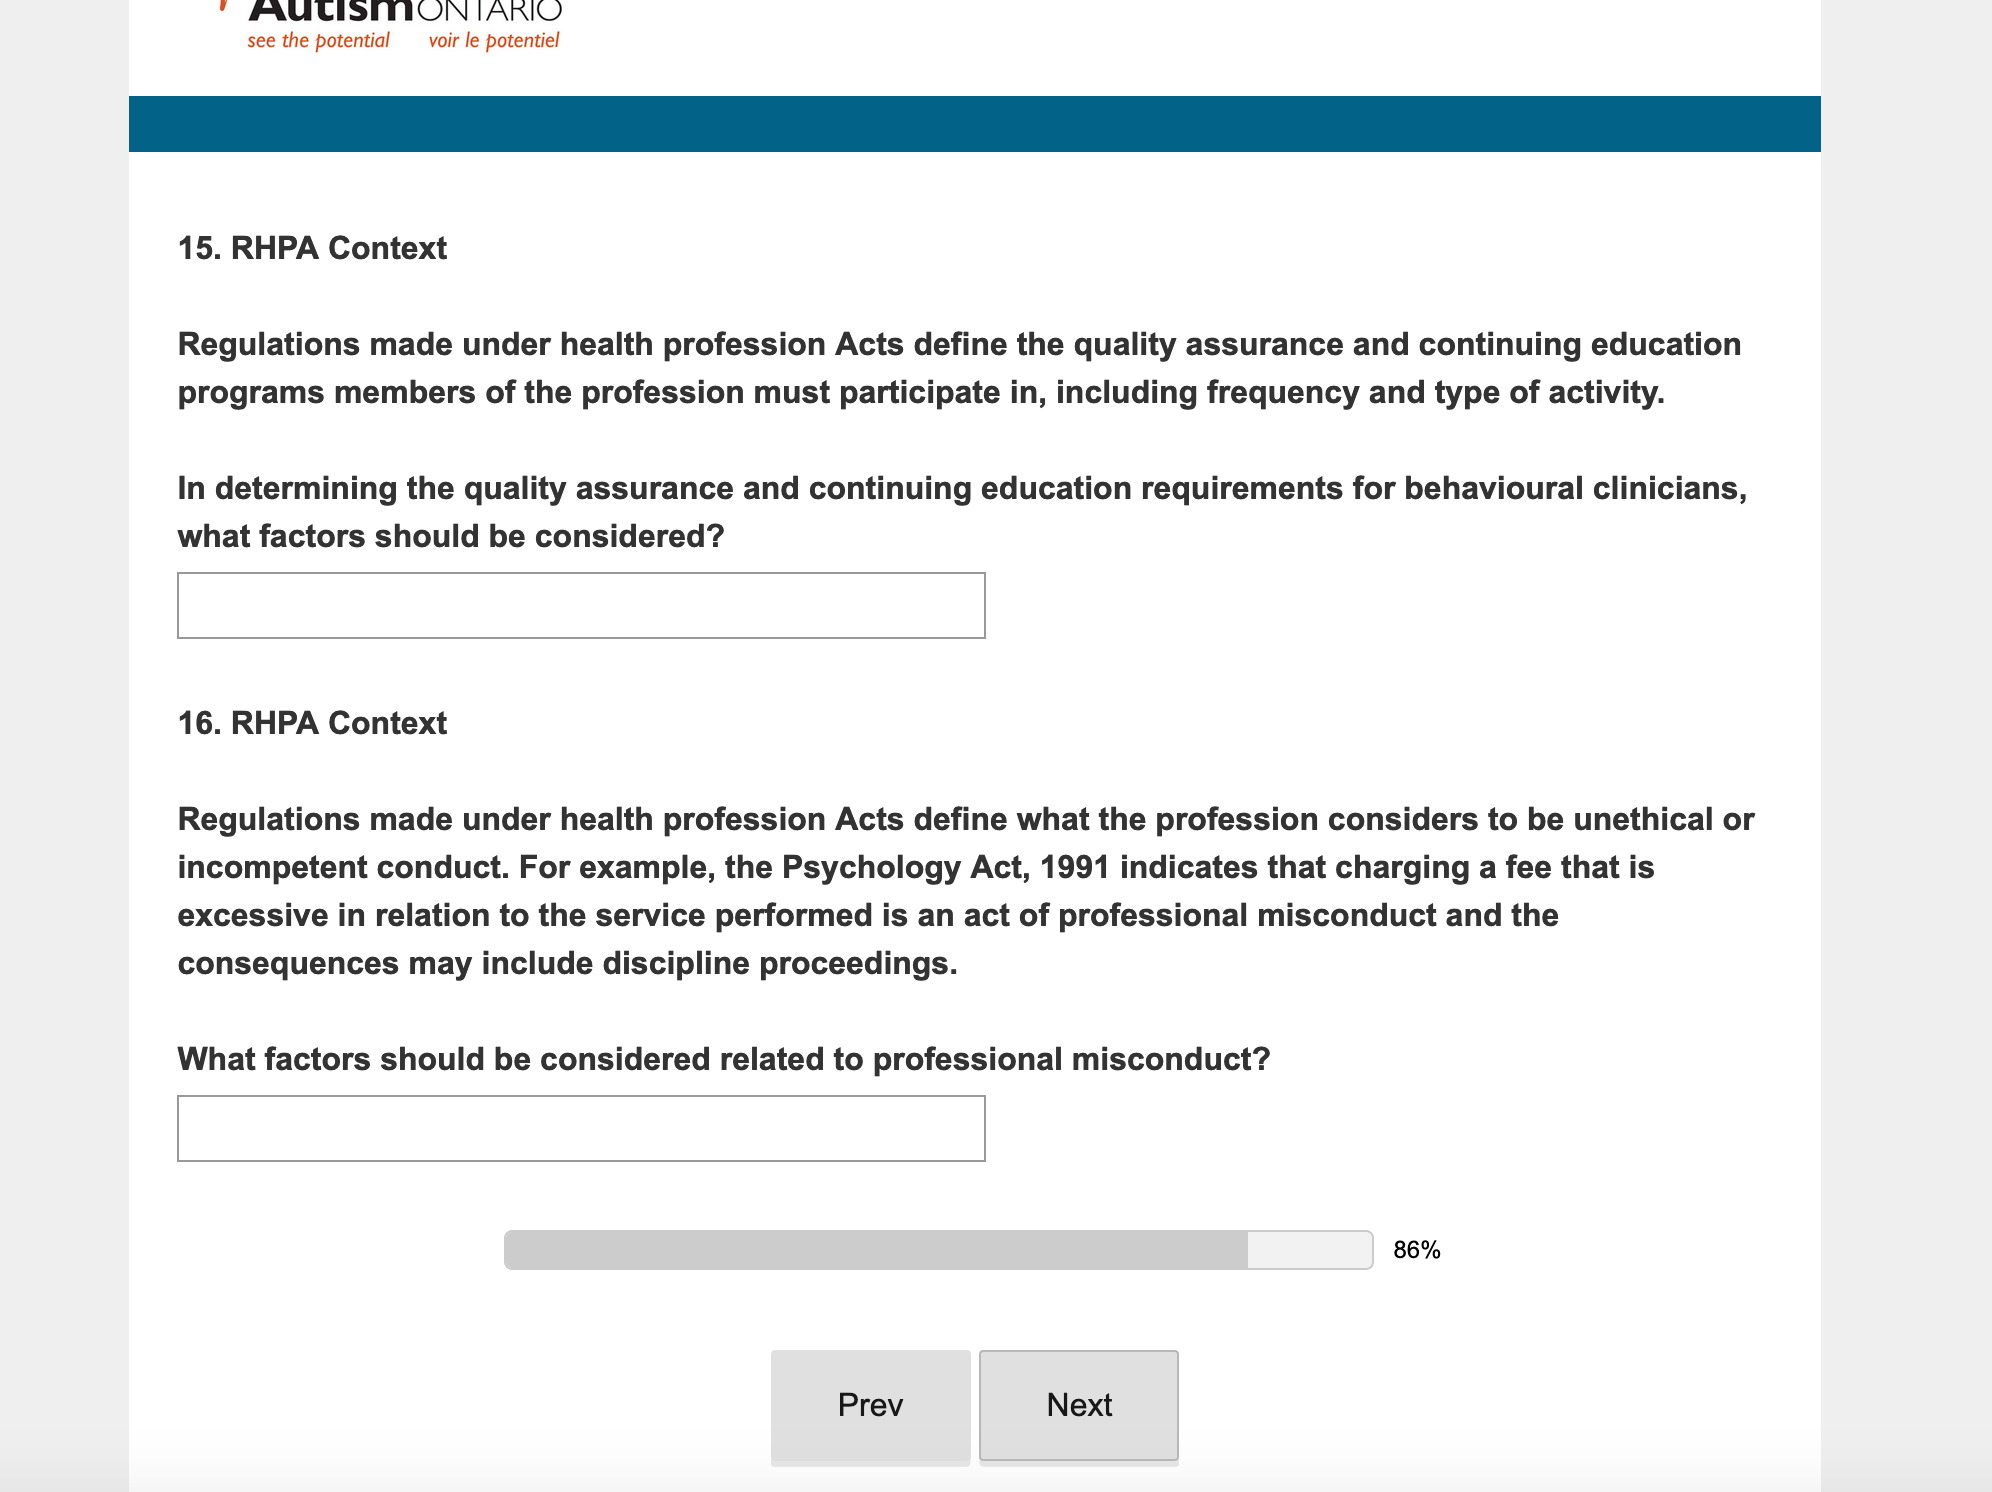 Question 15 of the survey reads: Regulations made under health profession Acts define the quality assurance and continuing education programs members of the profession must participate in, including frequency and type of activity. In determining the quality assurance and continuing education requirements for behavioural clinicians, what factors should be considered?